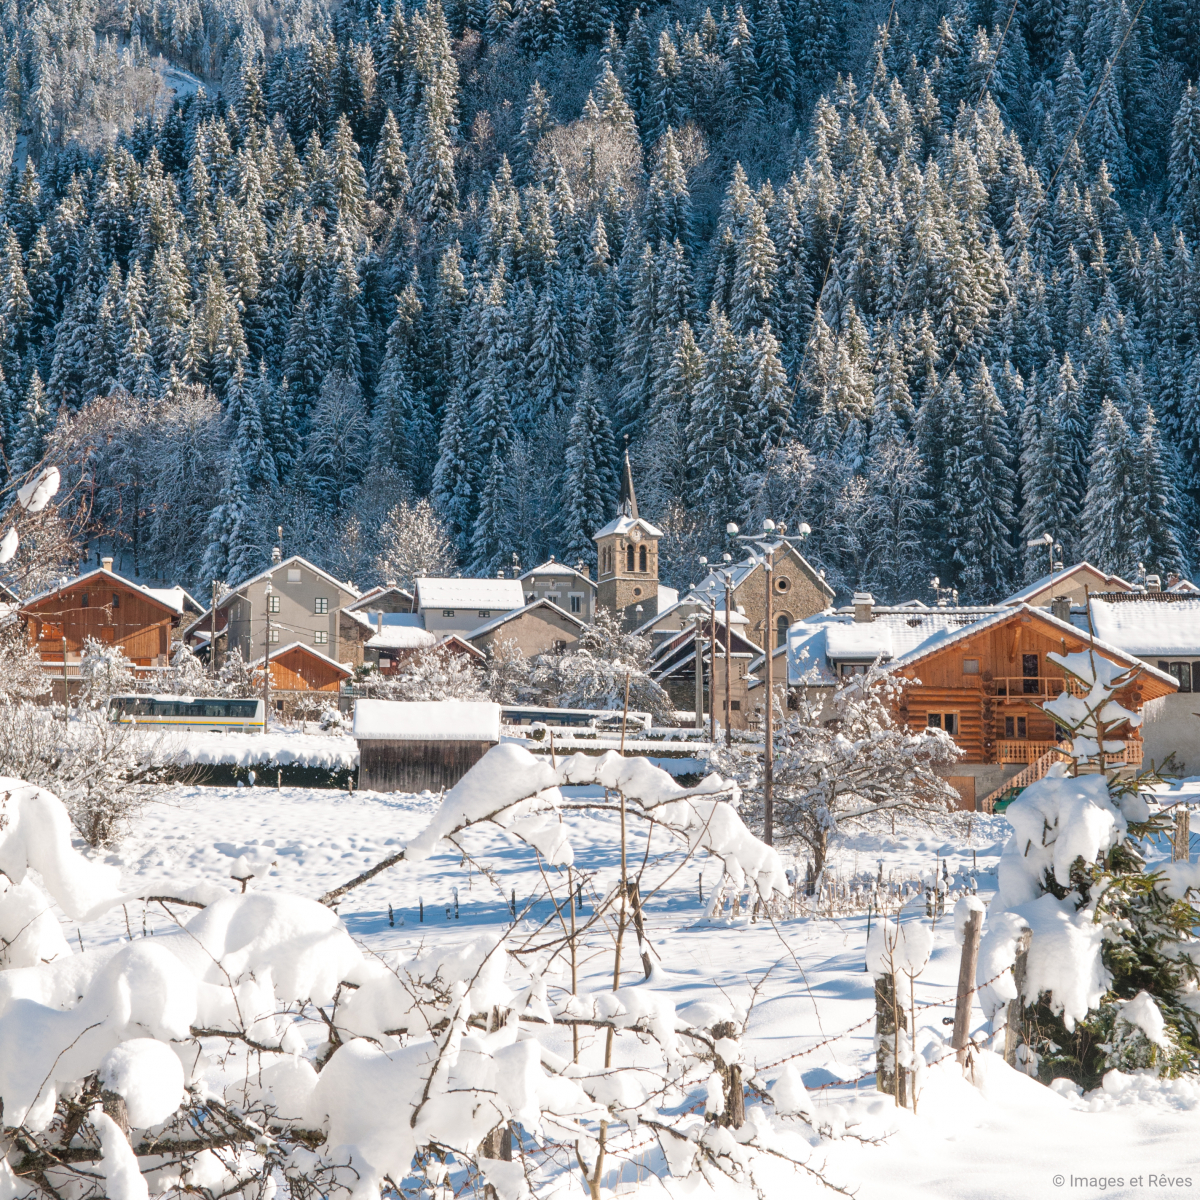 les-7-laux-ski-resort-belledonne-alpes-isere-images-et-reves